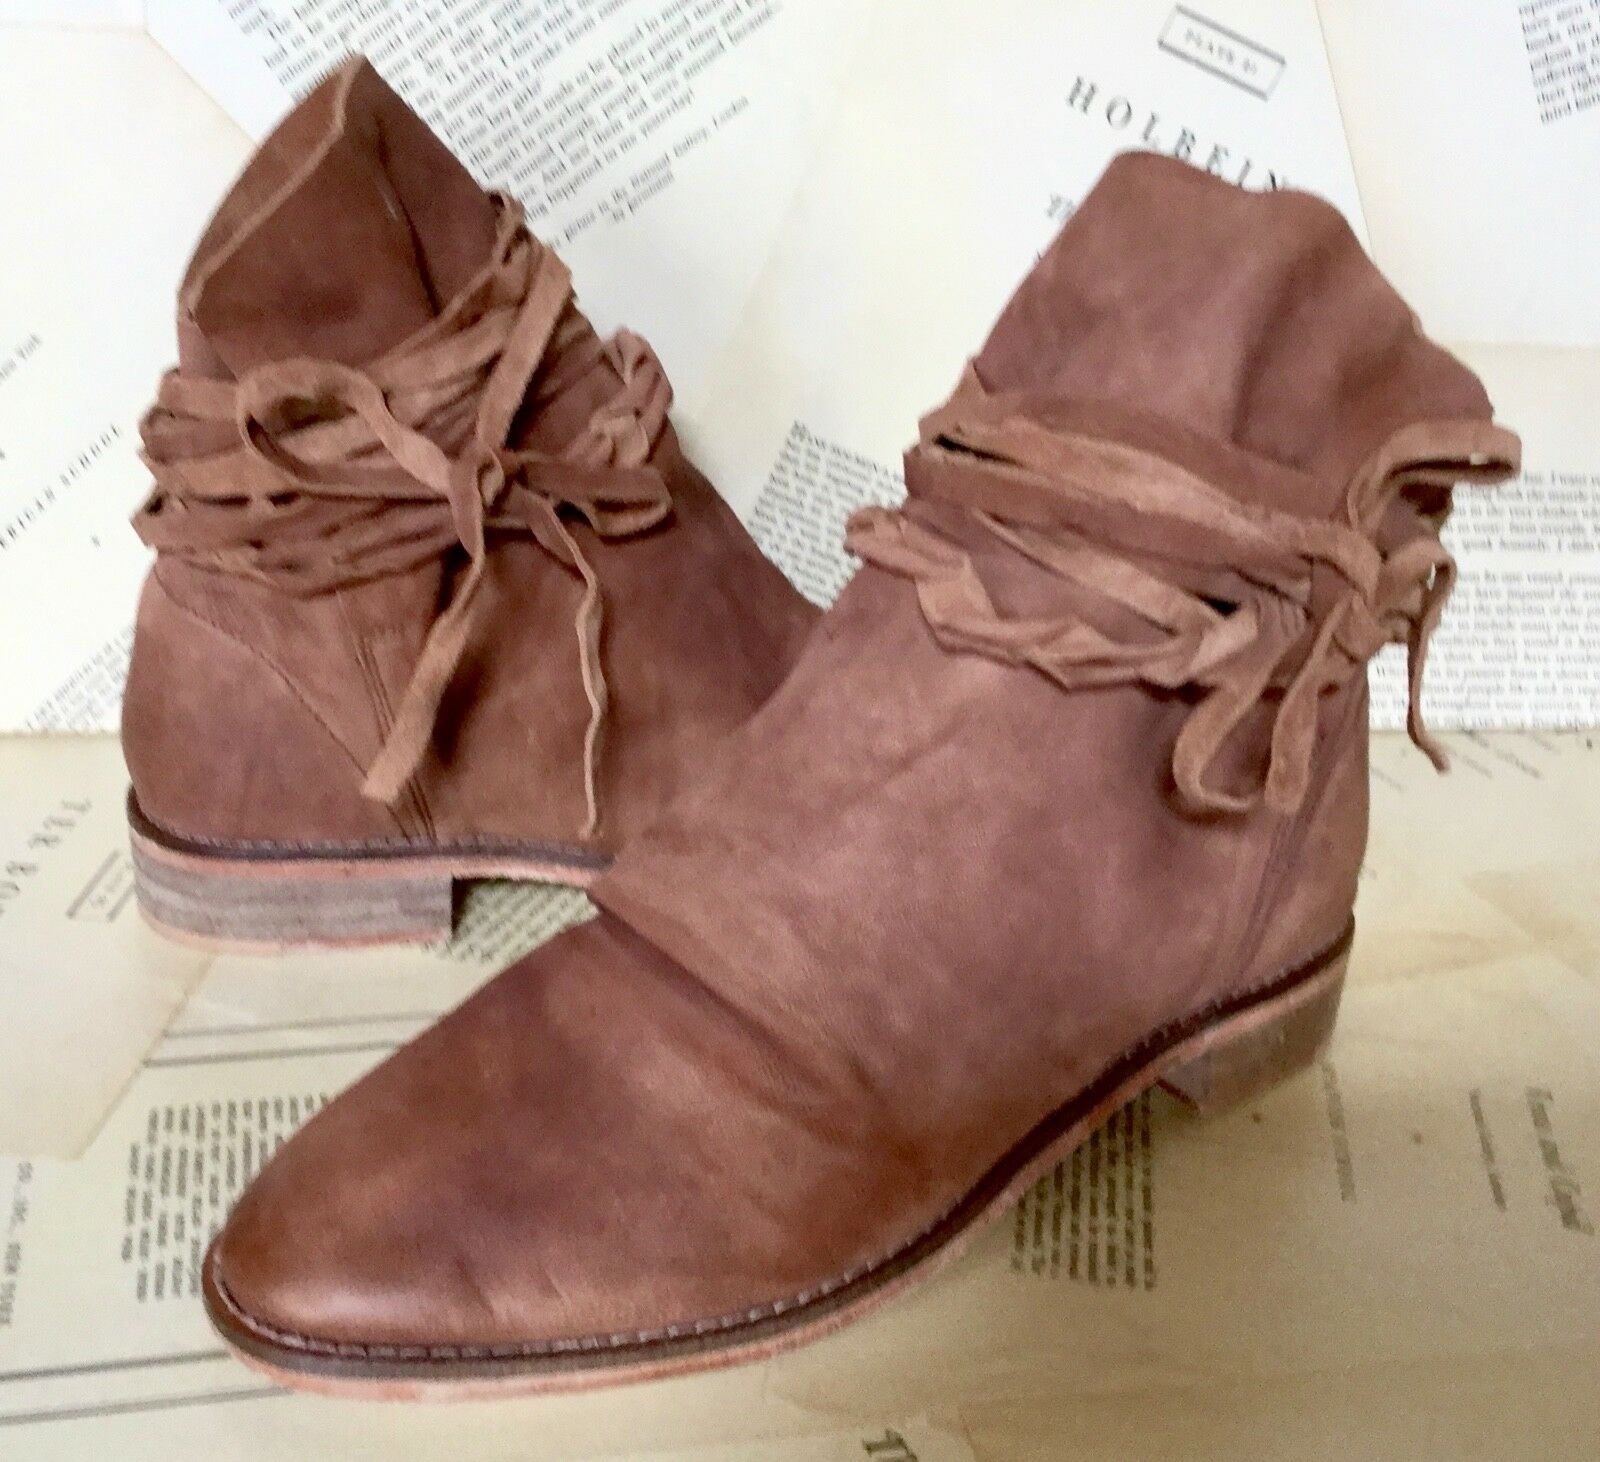 NEW Free People light brown Distressed Distressed Distressed Washed Leather Ankle Tie Wrap Boot 40  9 6d6c9c